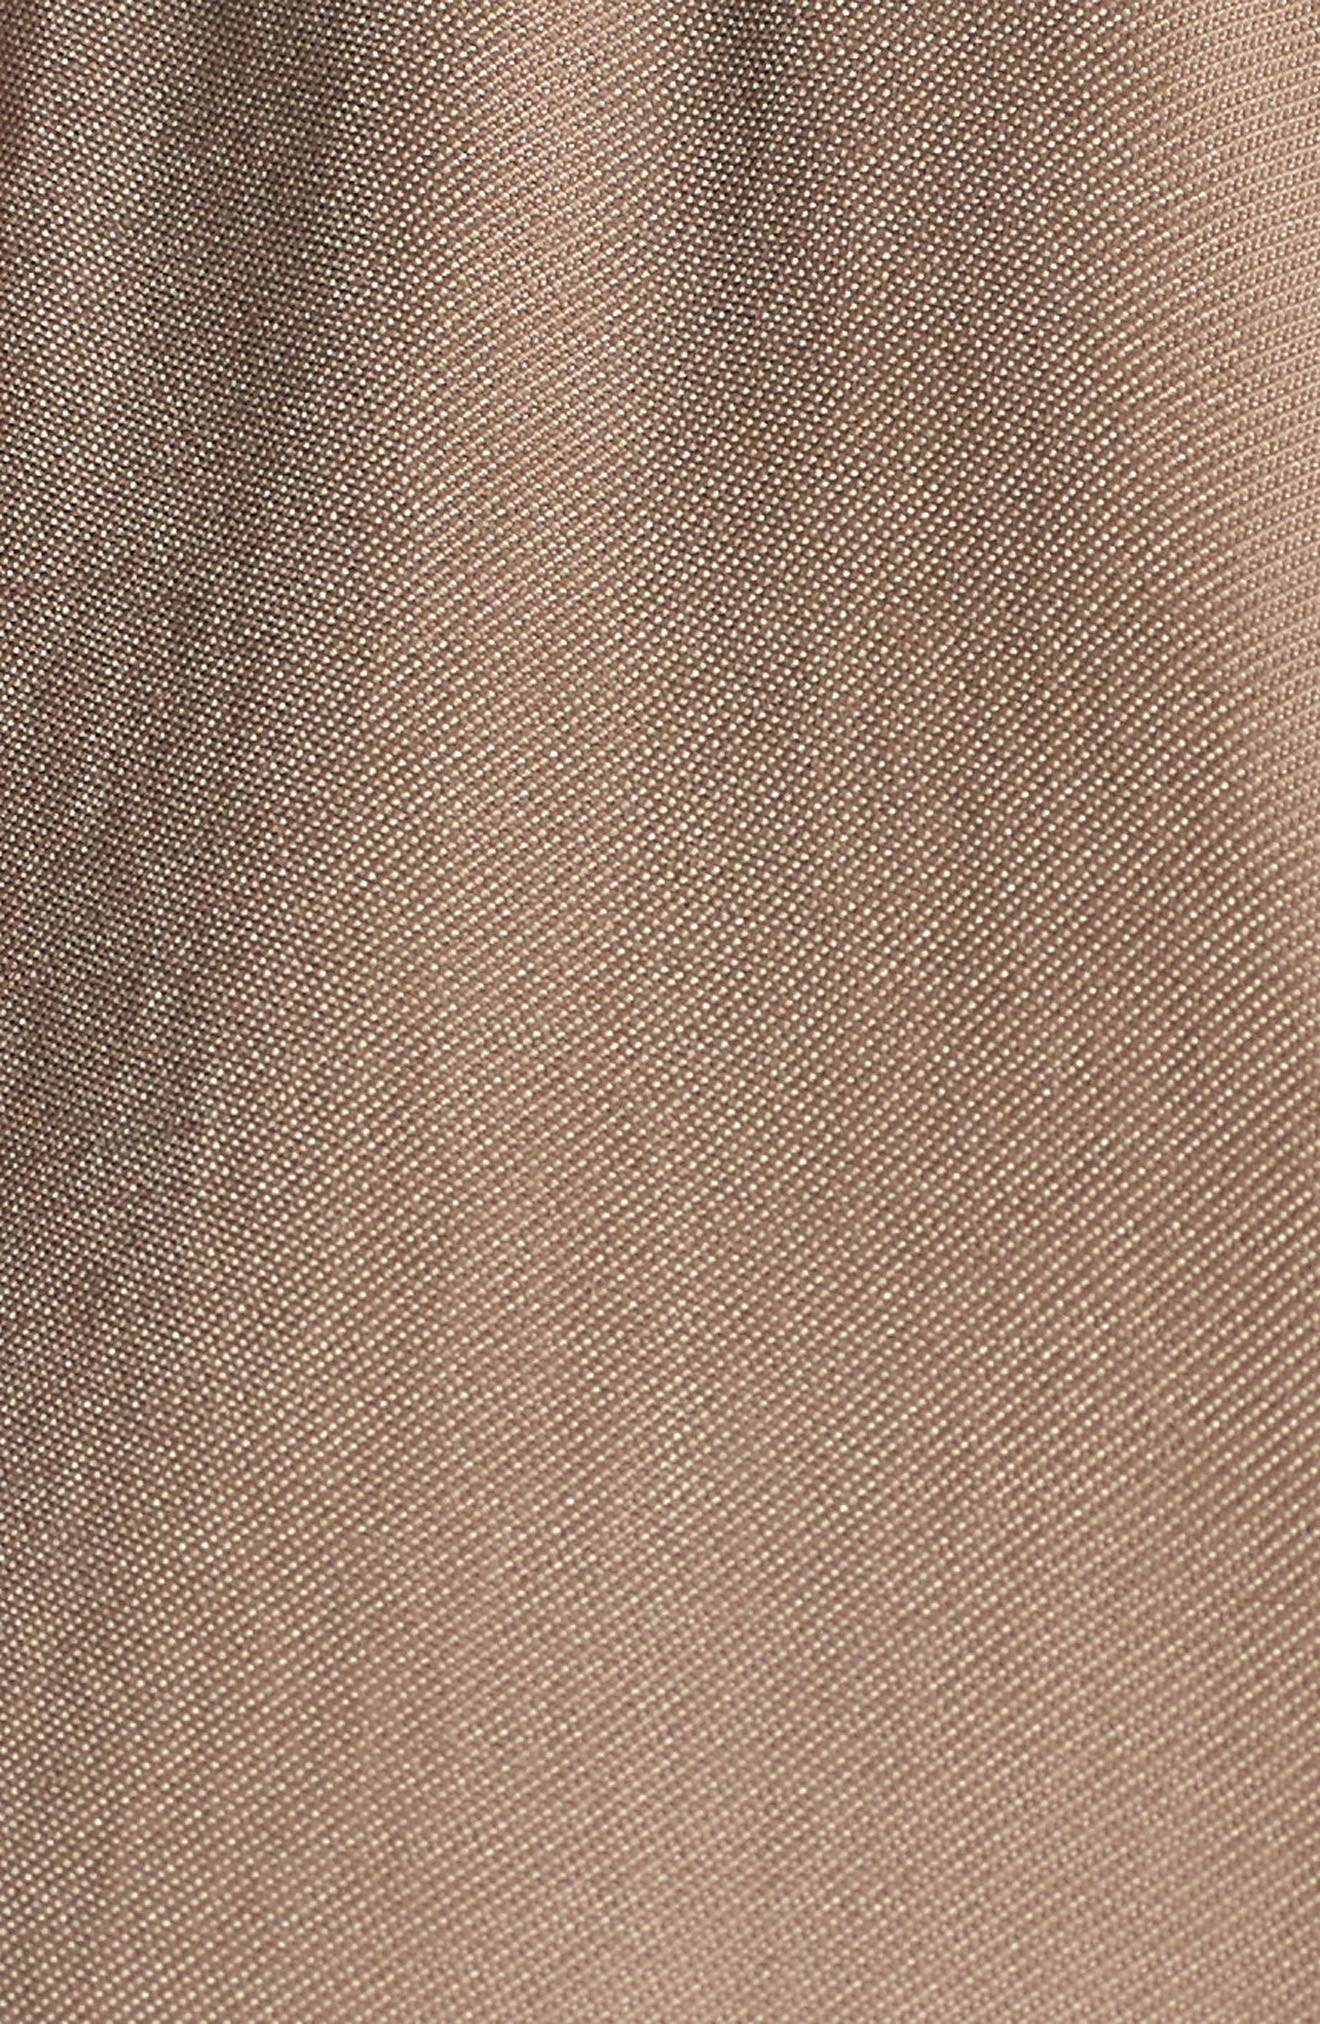 Twill Zip Front Jacket,                             Alternate thumbnail 6, color,                             Tan Greige